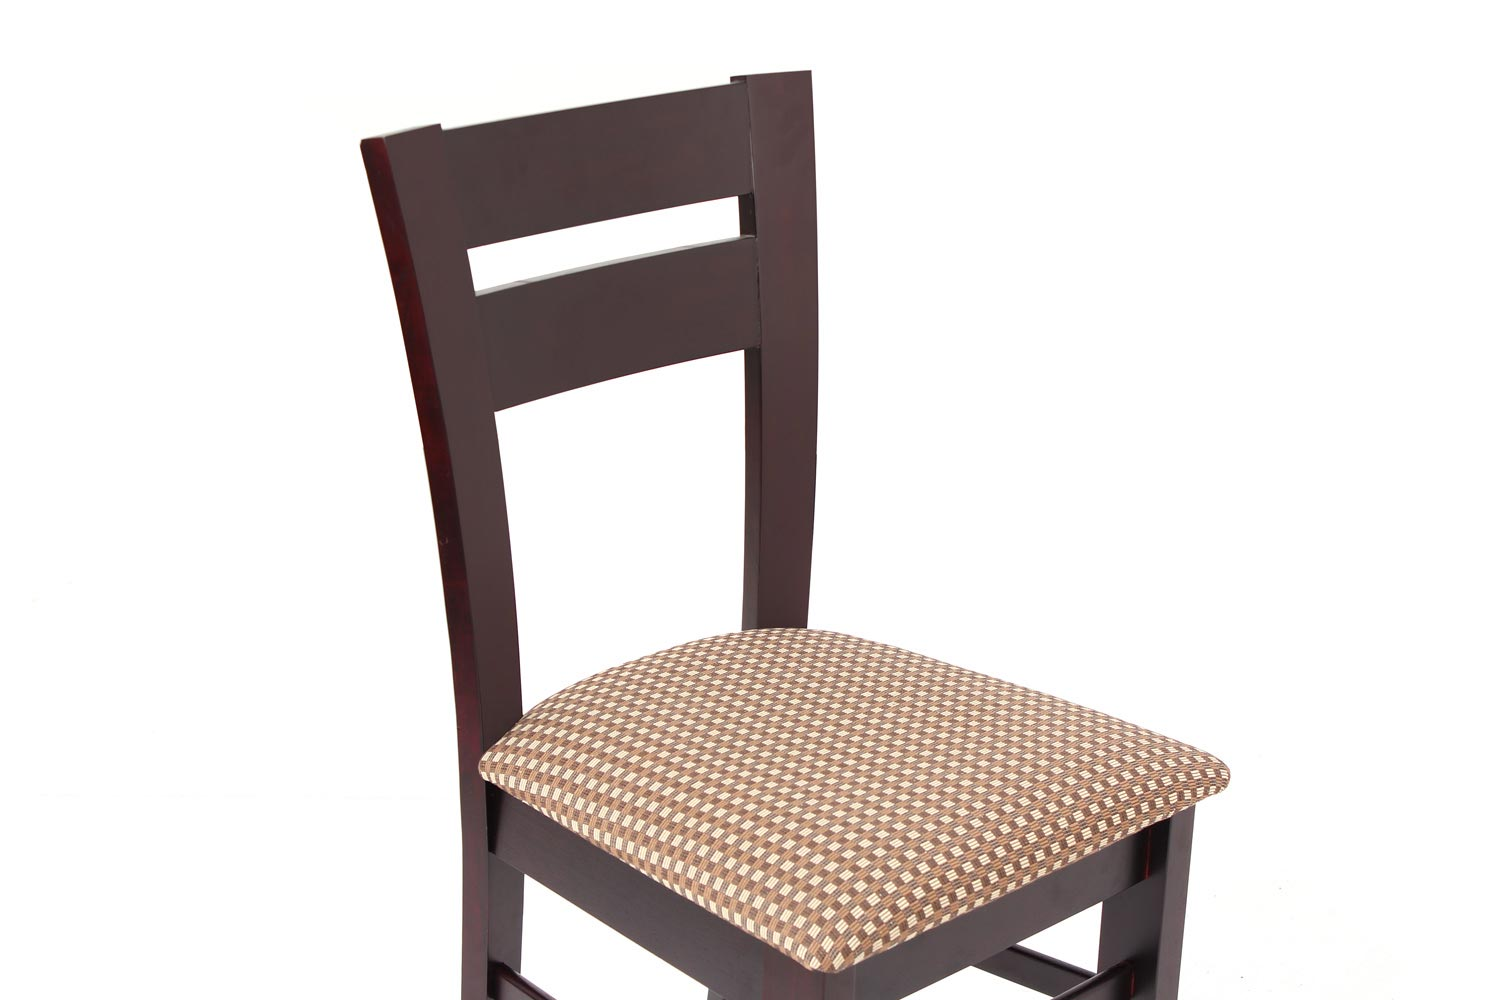 touchwood_berry_solidwood_dining_chair_set_of_2_rosewood_finish_7_4